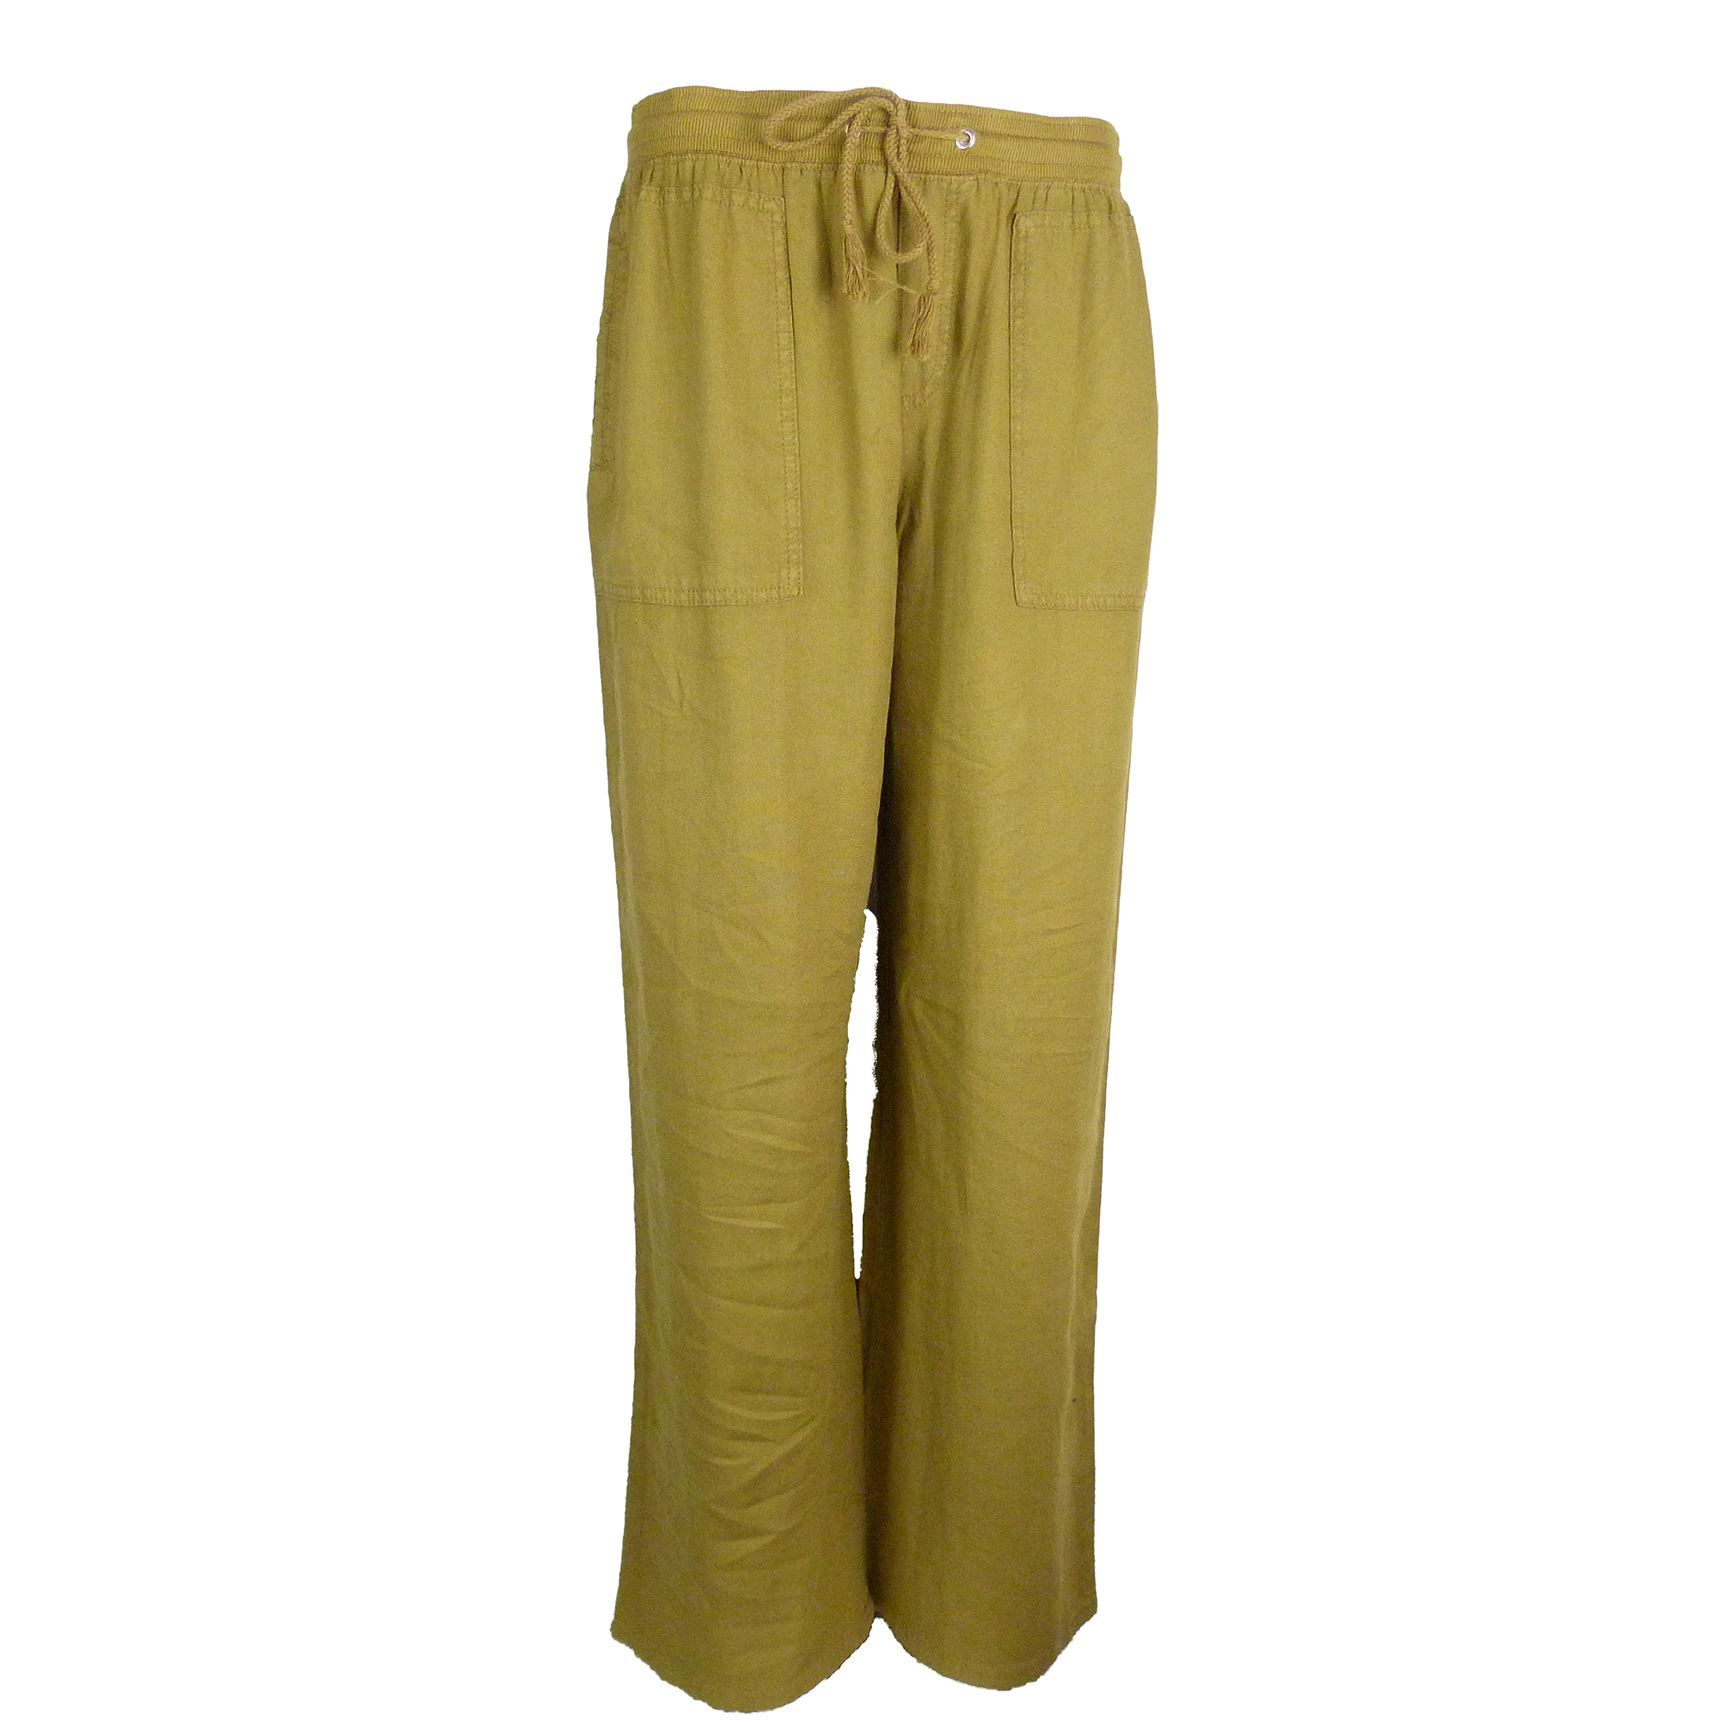 EX M/&s Marks and Spencer Collezione Gamba Larga 4 WAY STRETCH PANTALONI RRP £ 25.00